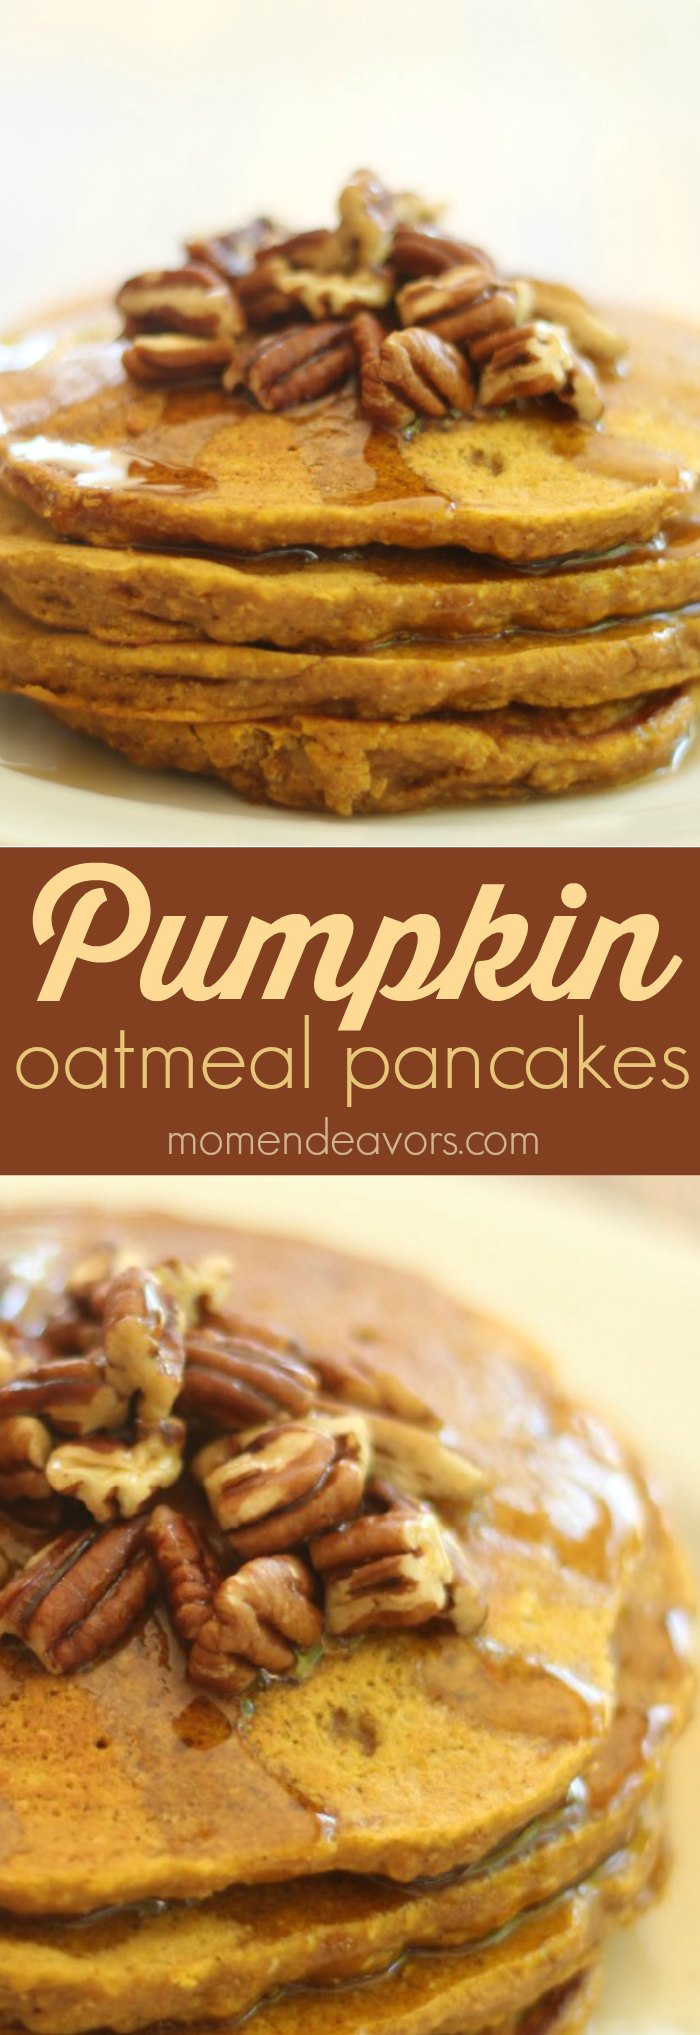 pumpkin-oatmeal-pancakes-recipe